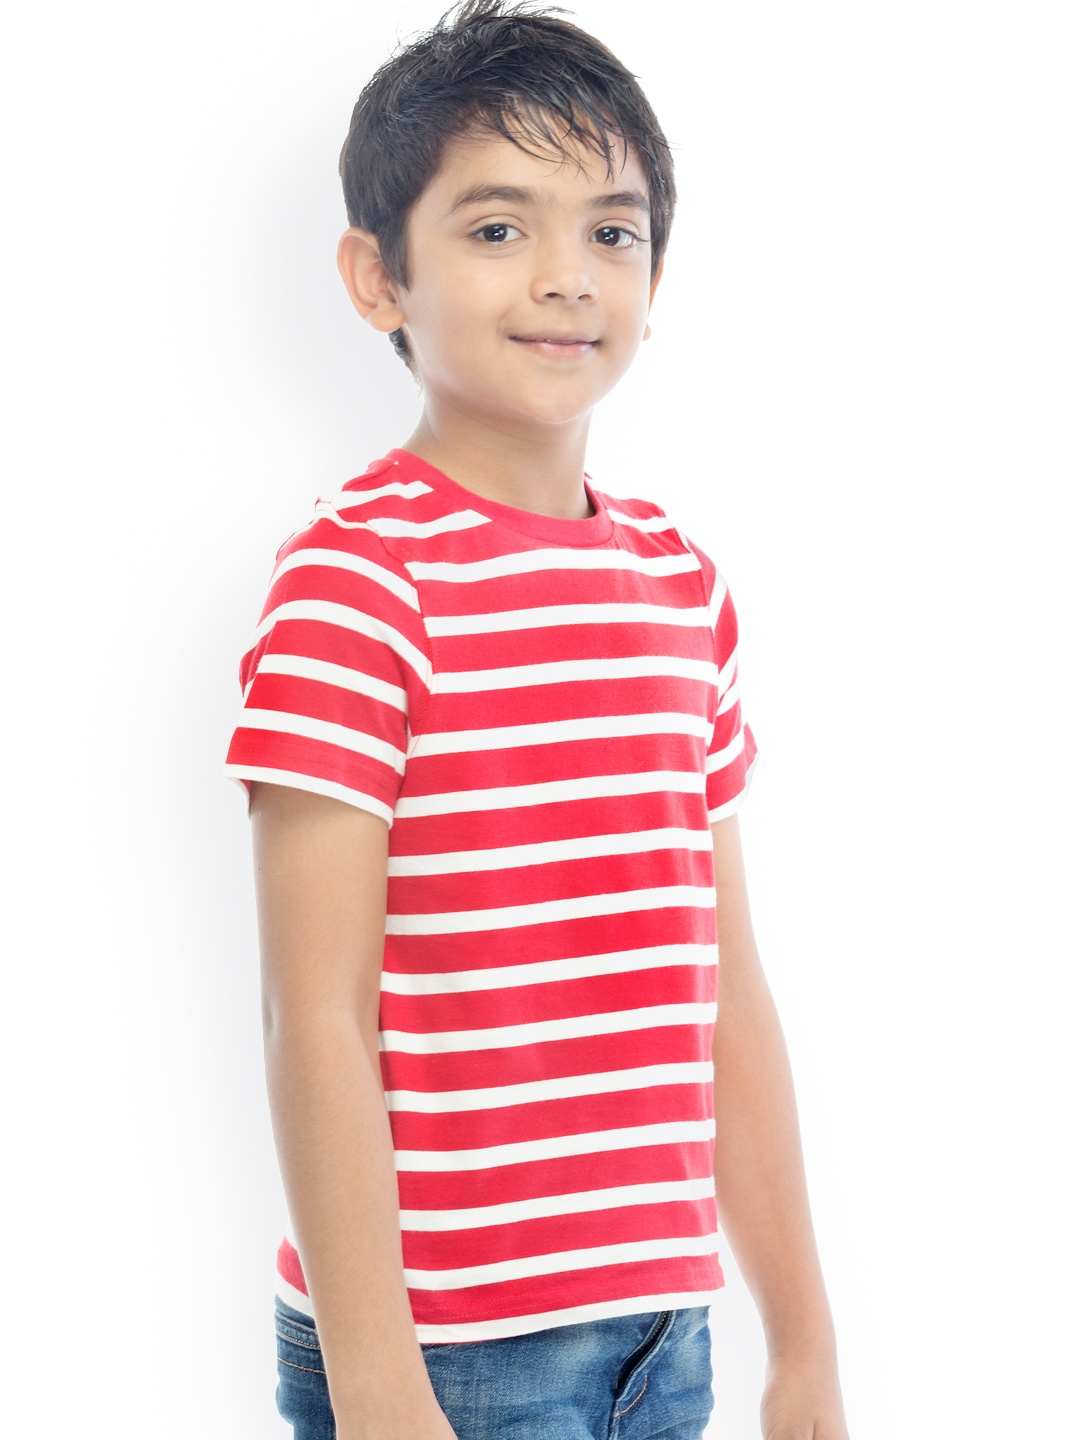 Myntra oxolloxo boys red white striped t shirt 882375 for Best striped t shirt